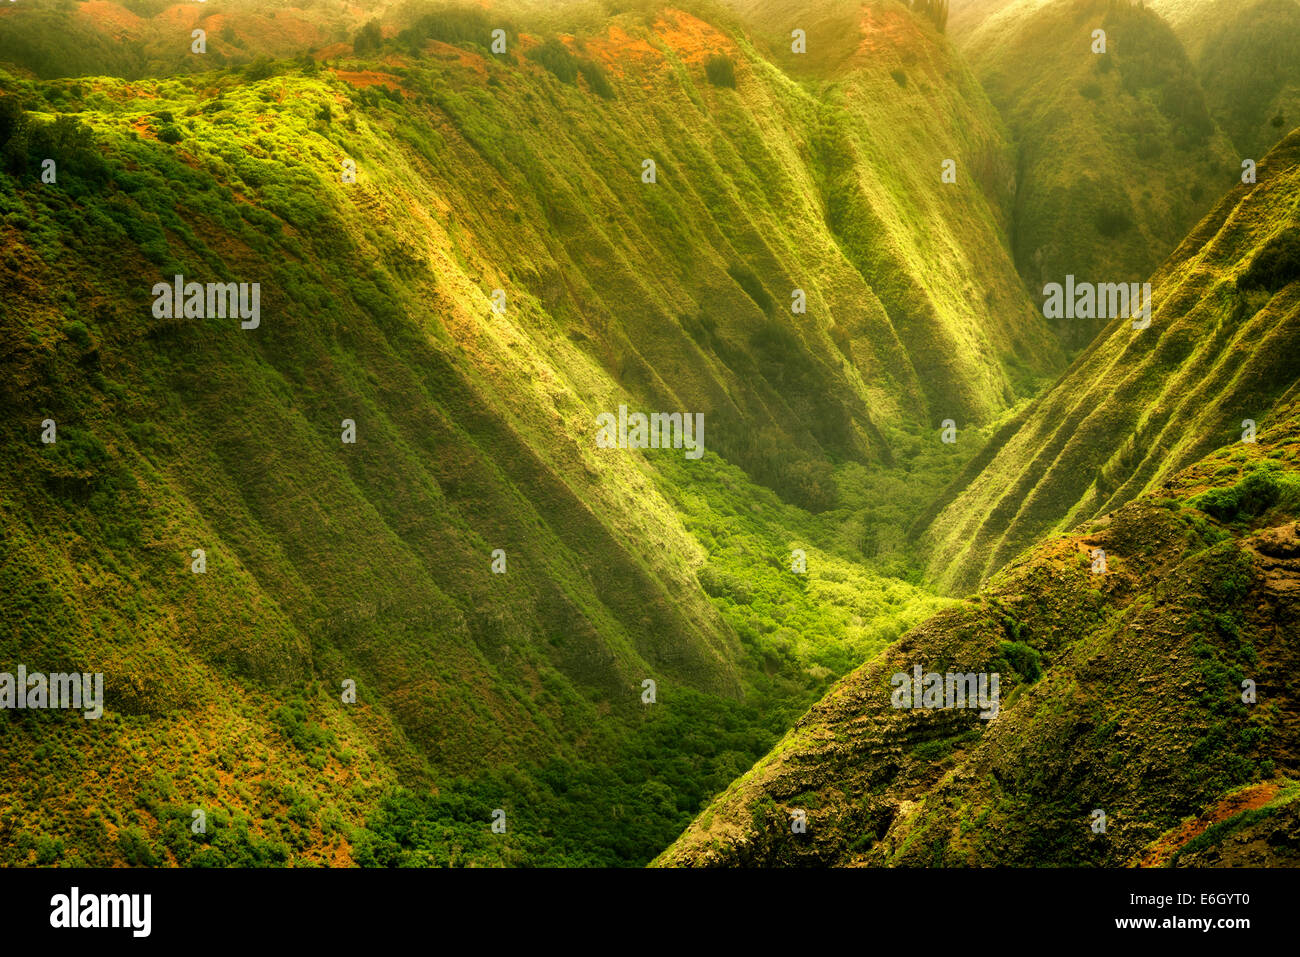 Maunalei Valley with dappled light. Lanai, Hawaii. - Stock Image